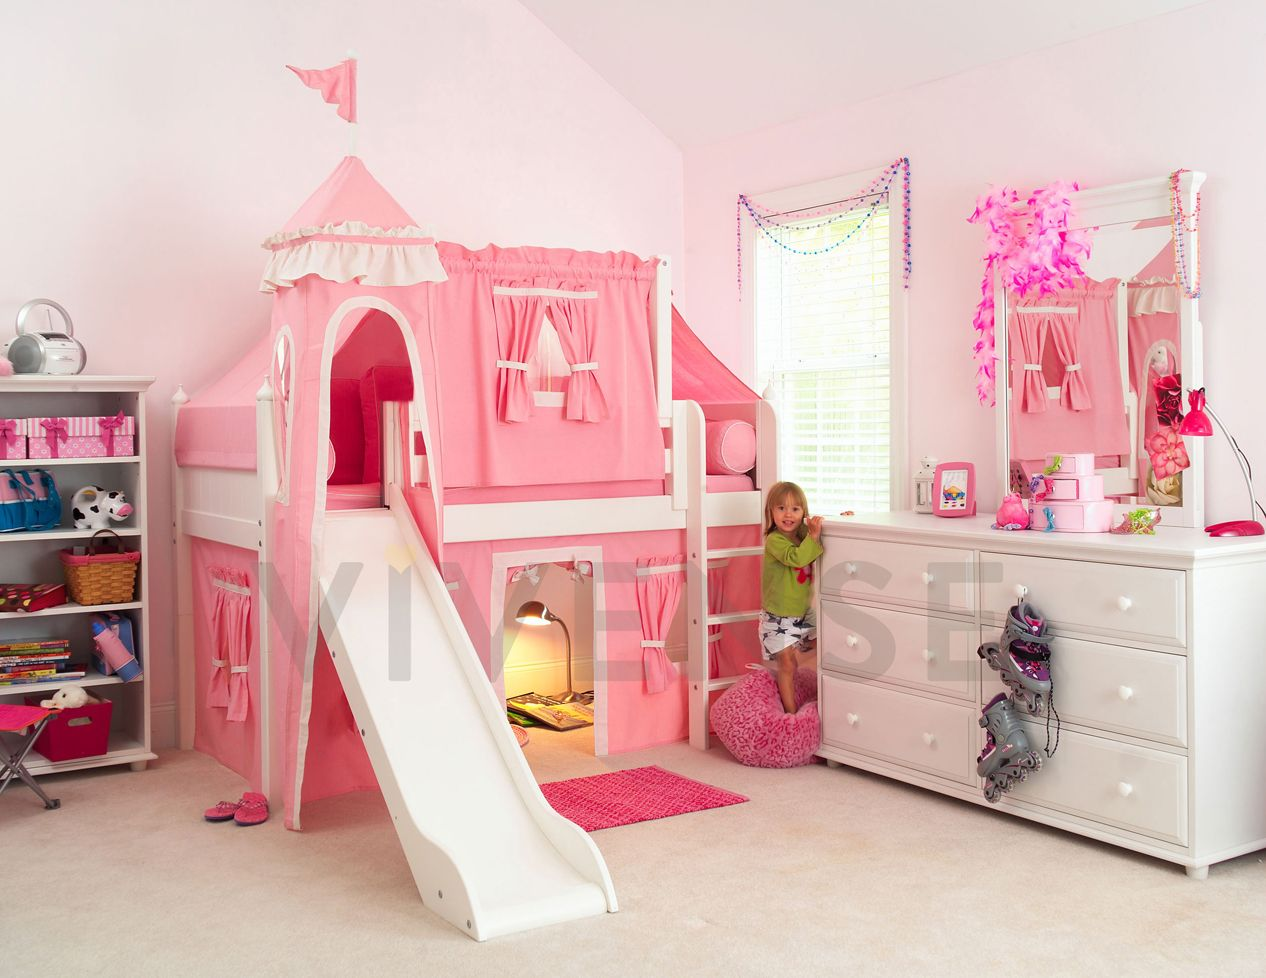 Explore Kids Bedroom Paint and more!